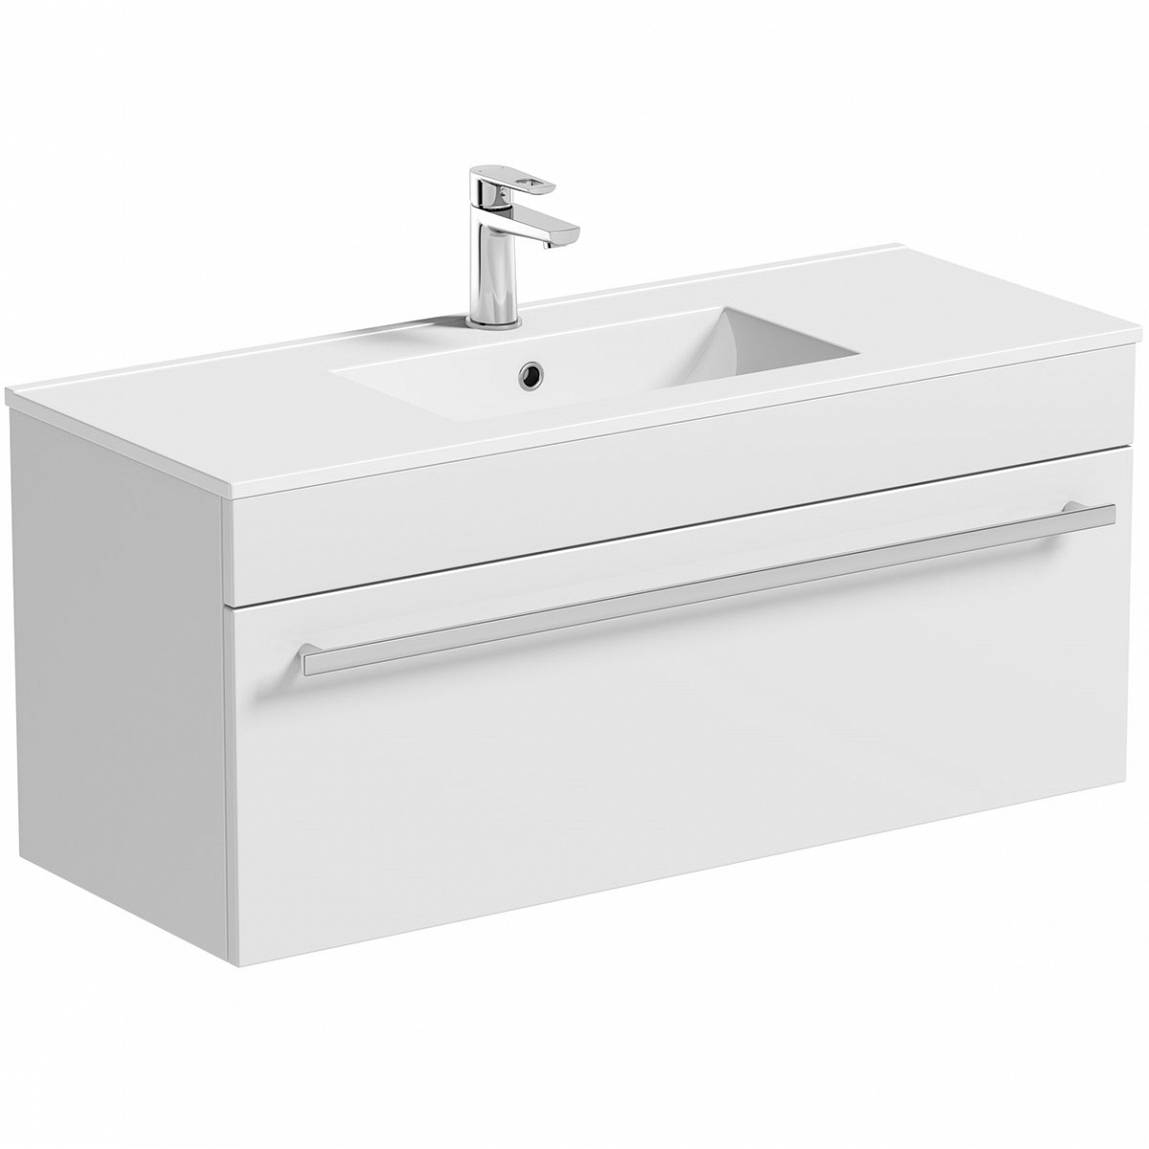 Image of Odessa White Wall Hung 1000 Drawer Unit & Inset Basin